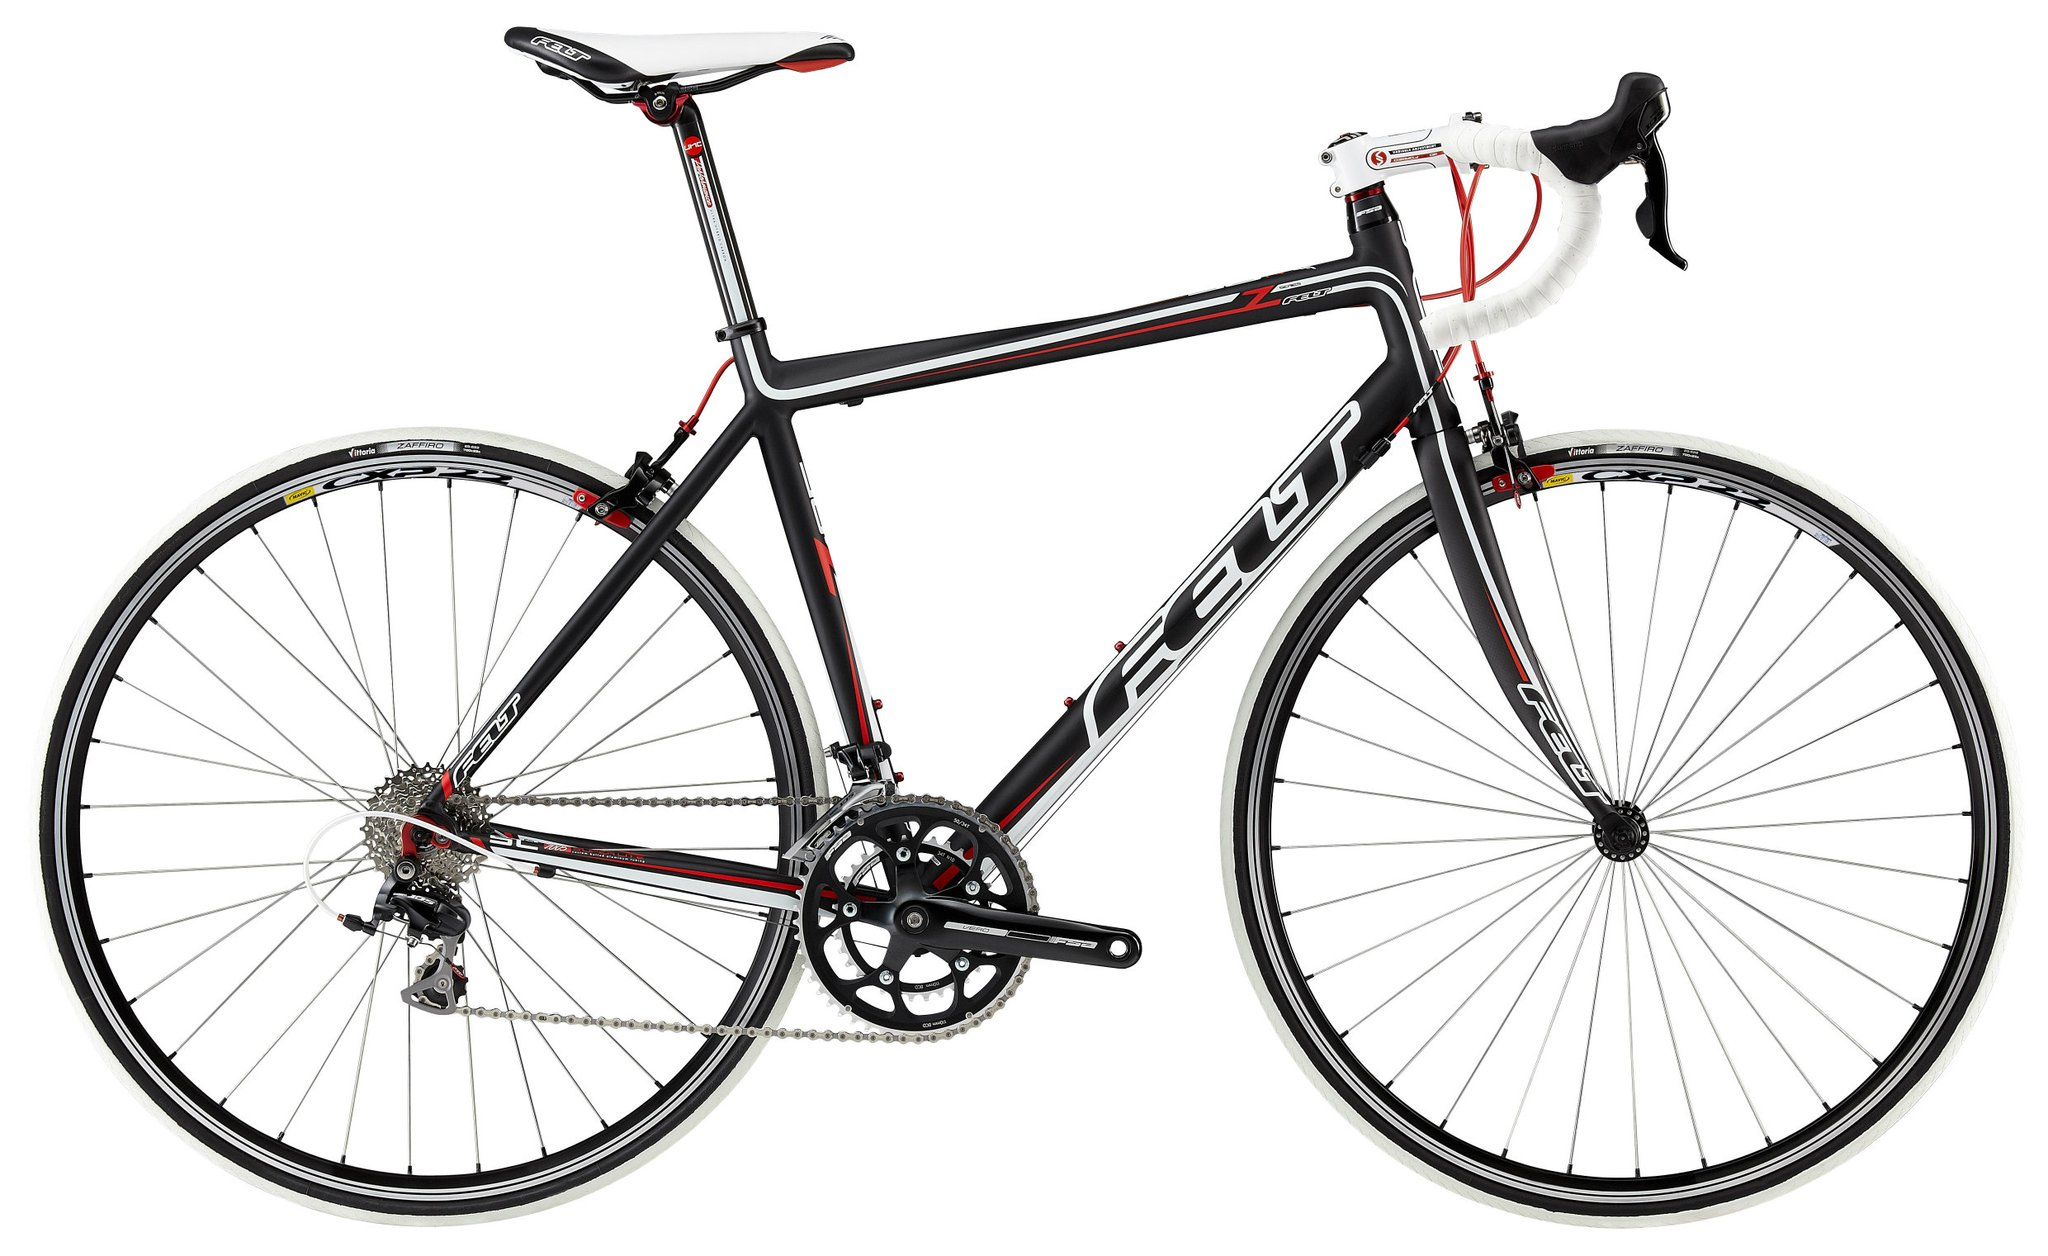 First Road Rike: Felt Z85, Giant Defy 1 or Raleigh Revenio 3.0